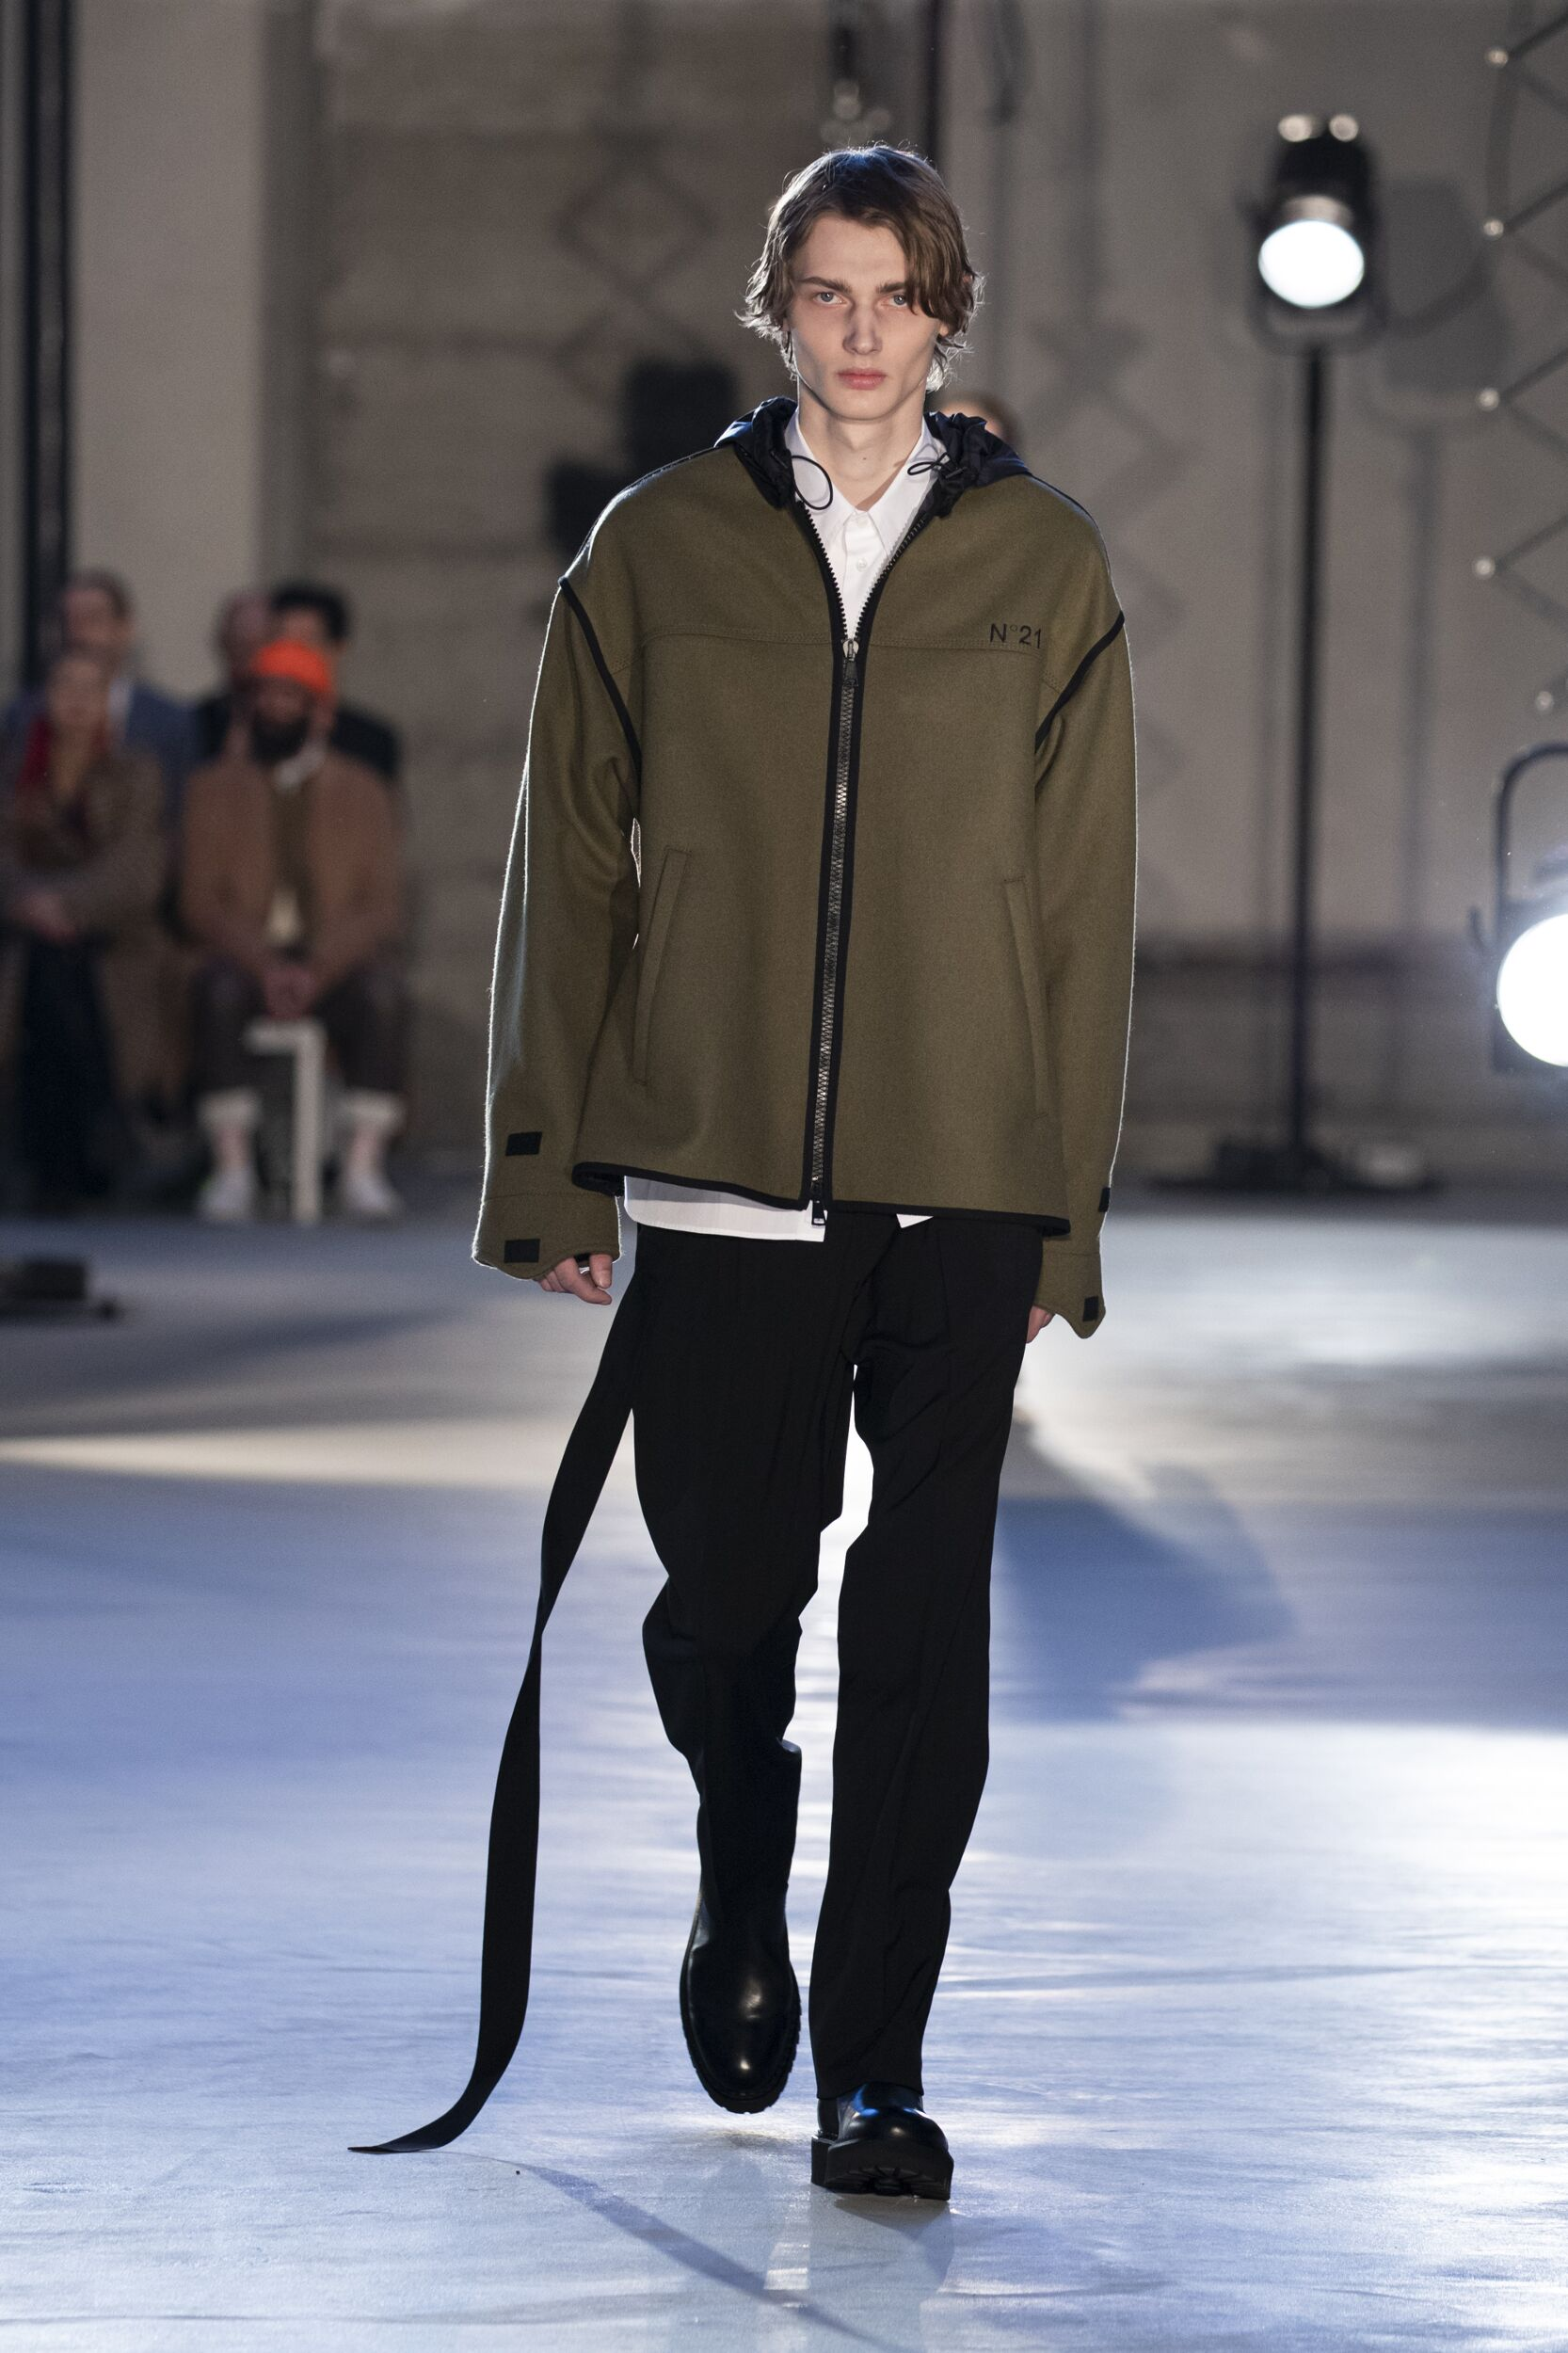 Winter 2020 Man Trends N°21